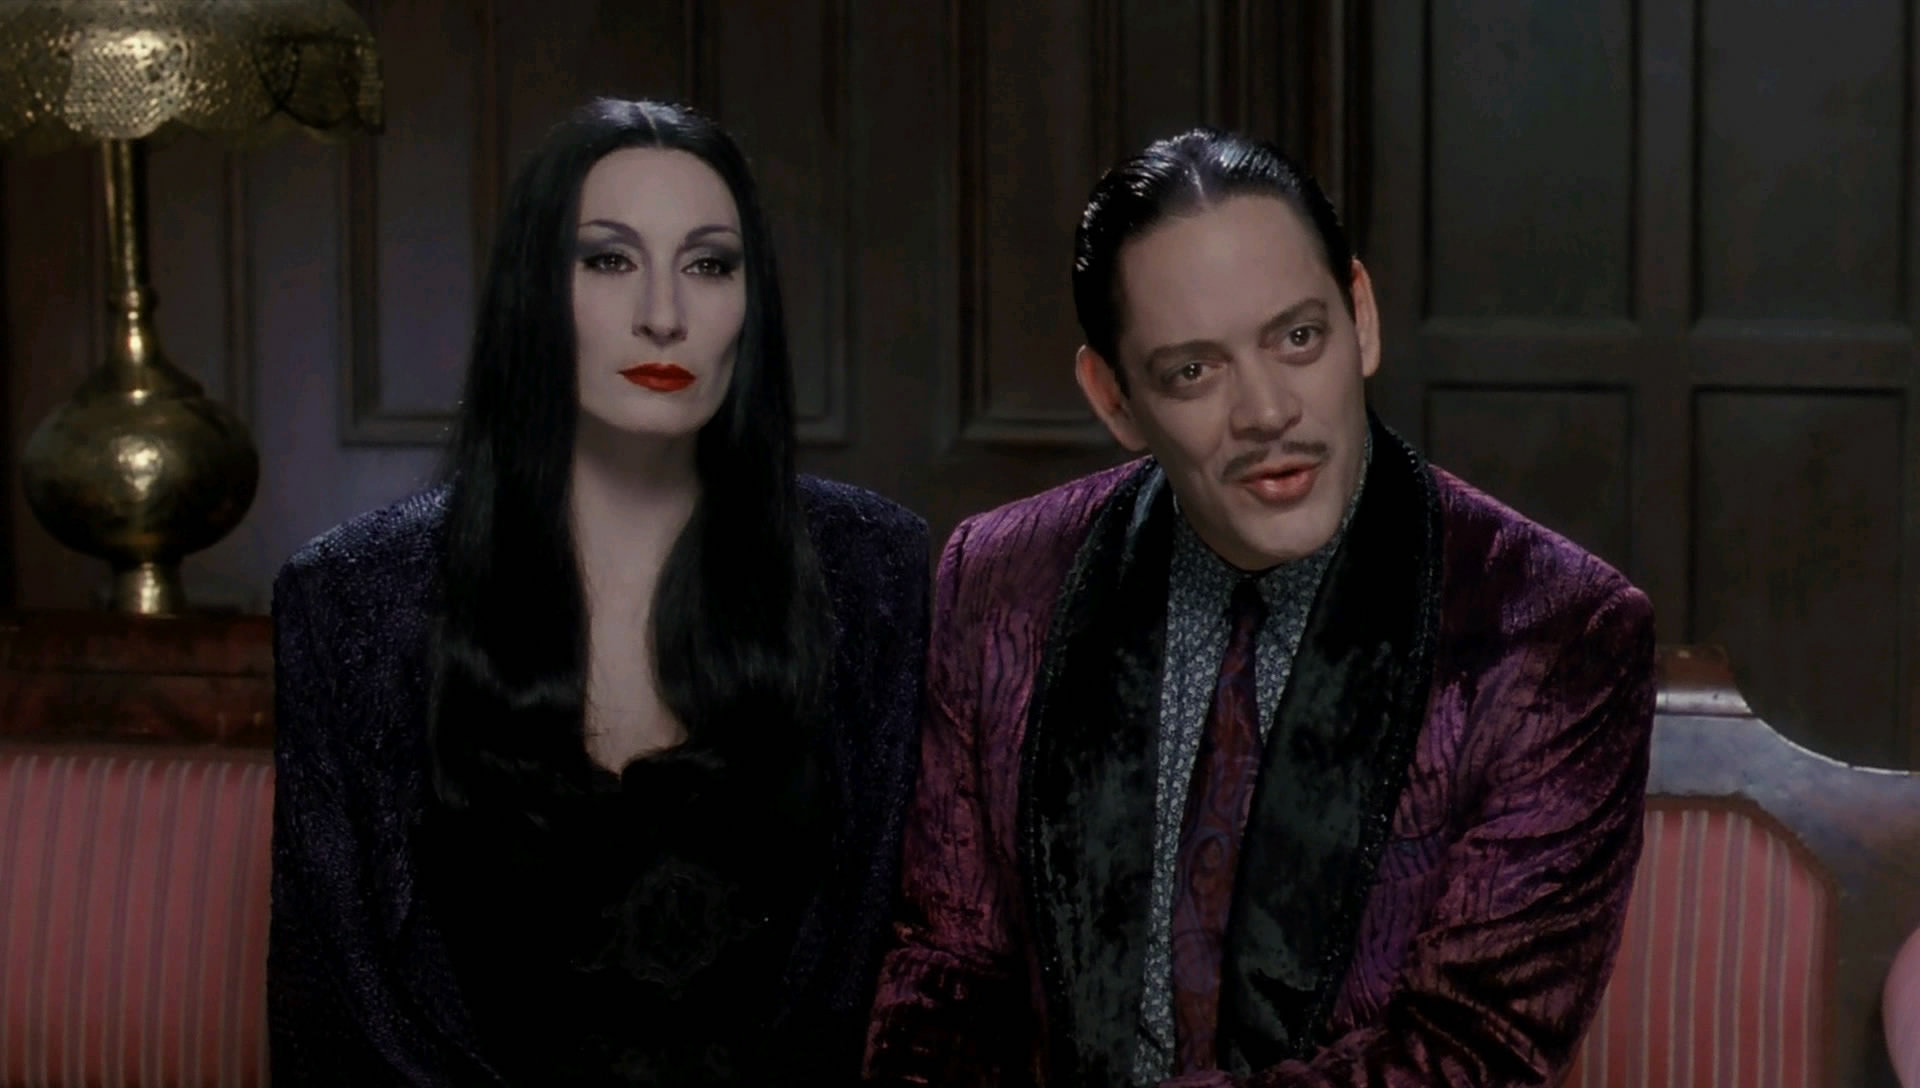 Exhumed Exonerated The Addams Family 1991 Bloody